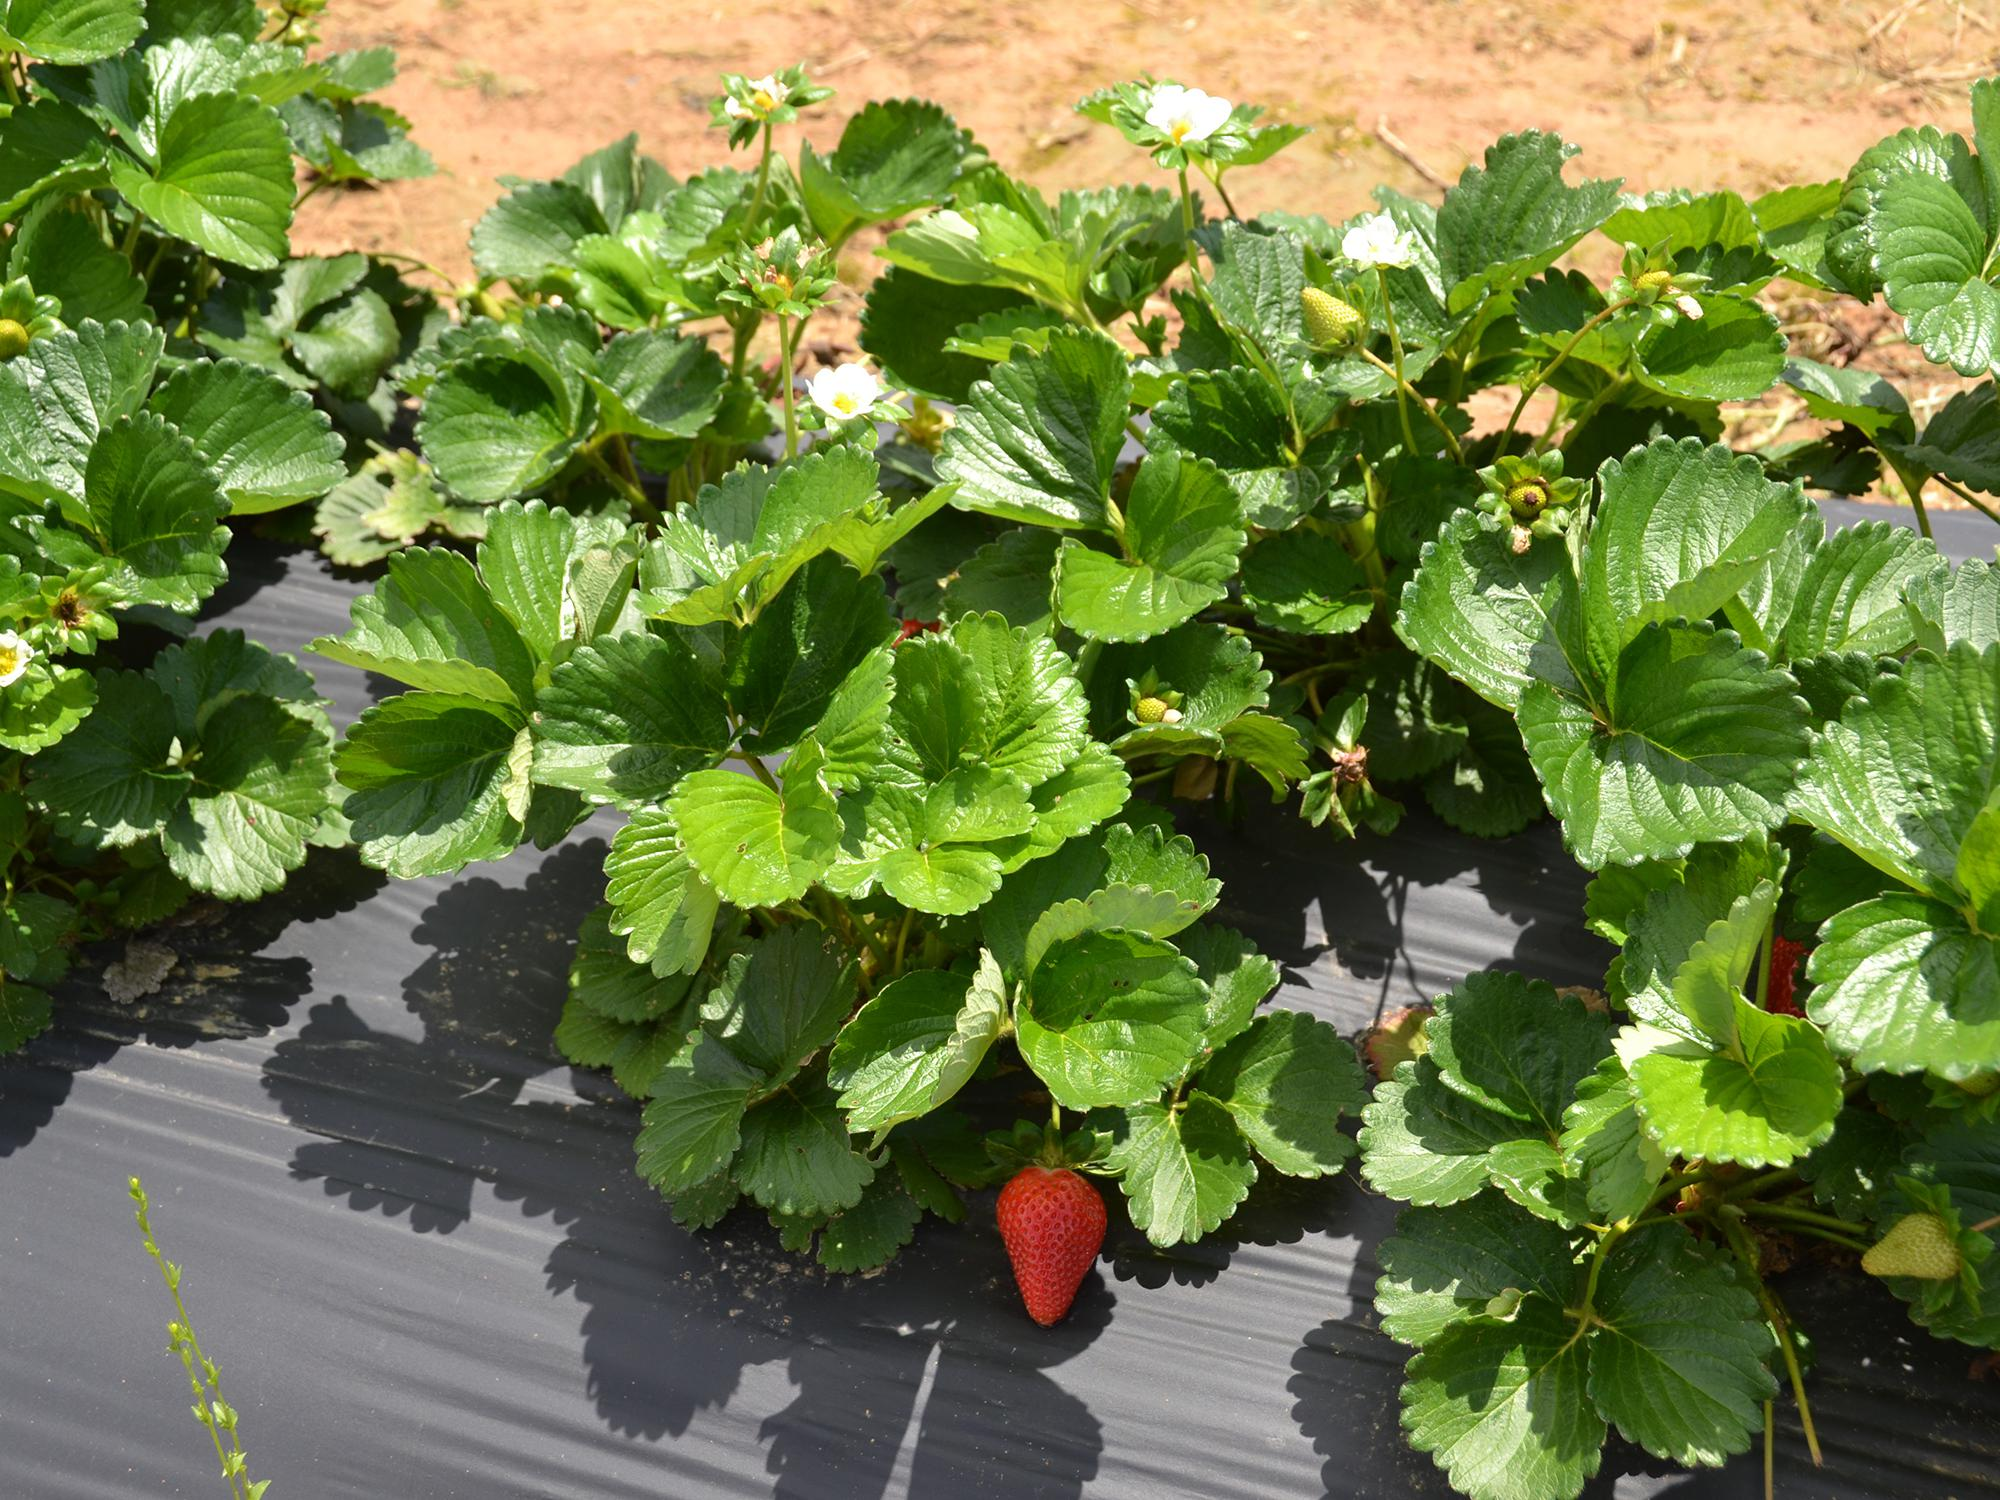 These Merced variety strawberries growing at the Mississippi State University Truck Crops Branch Experiment Station in Crystal Springs looked good on April 21, 2016, despite rainy spring weather that has increased disease pressure on most of Mississippi's crop. Researchers at the station are conducting a strawberry variety trial to help Mississippi producers choose the best performing varieties for the state. (Photo by MSU Extension Service/Susan Collins-Smith)